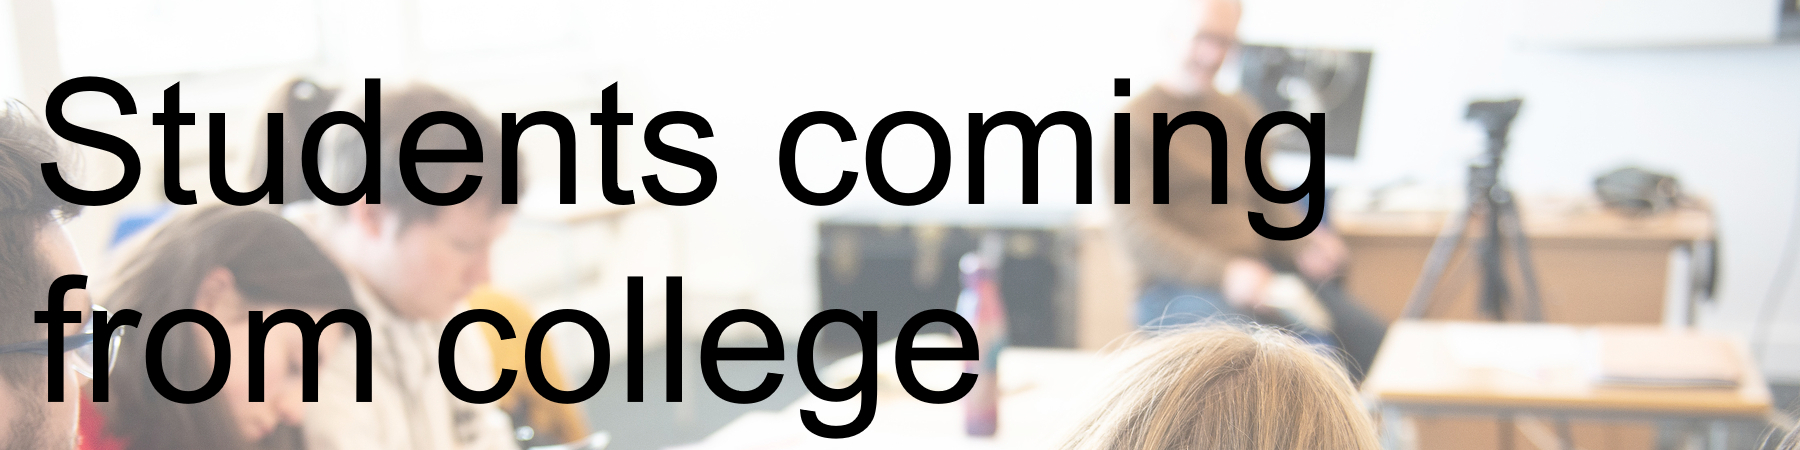 students coming from college